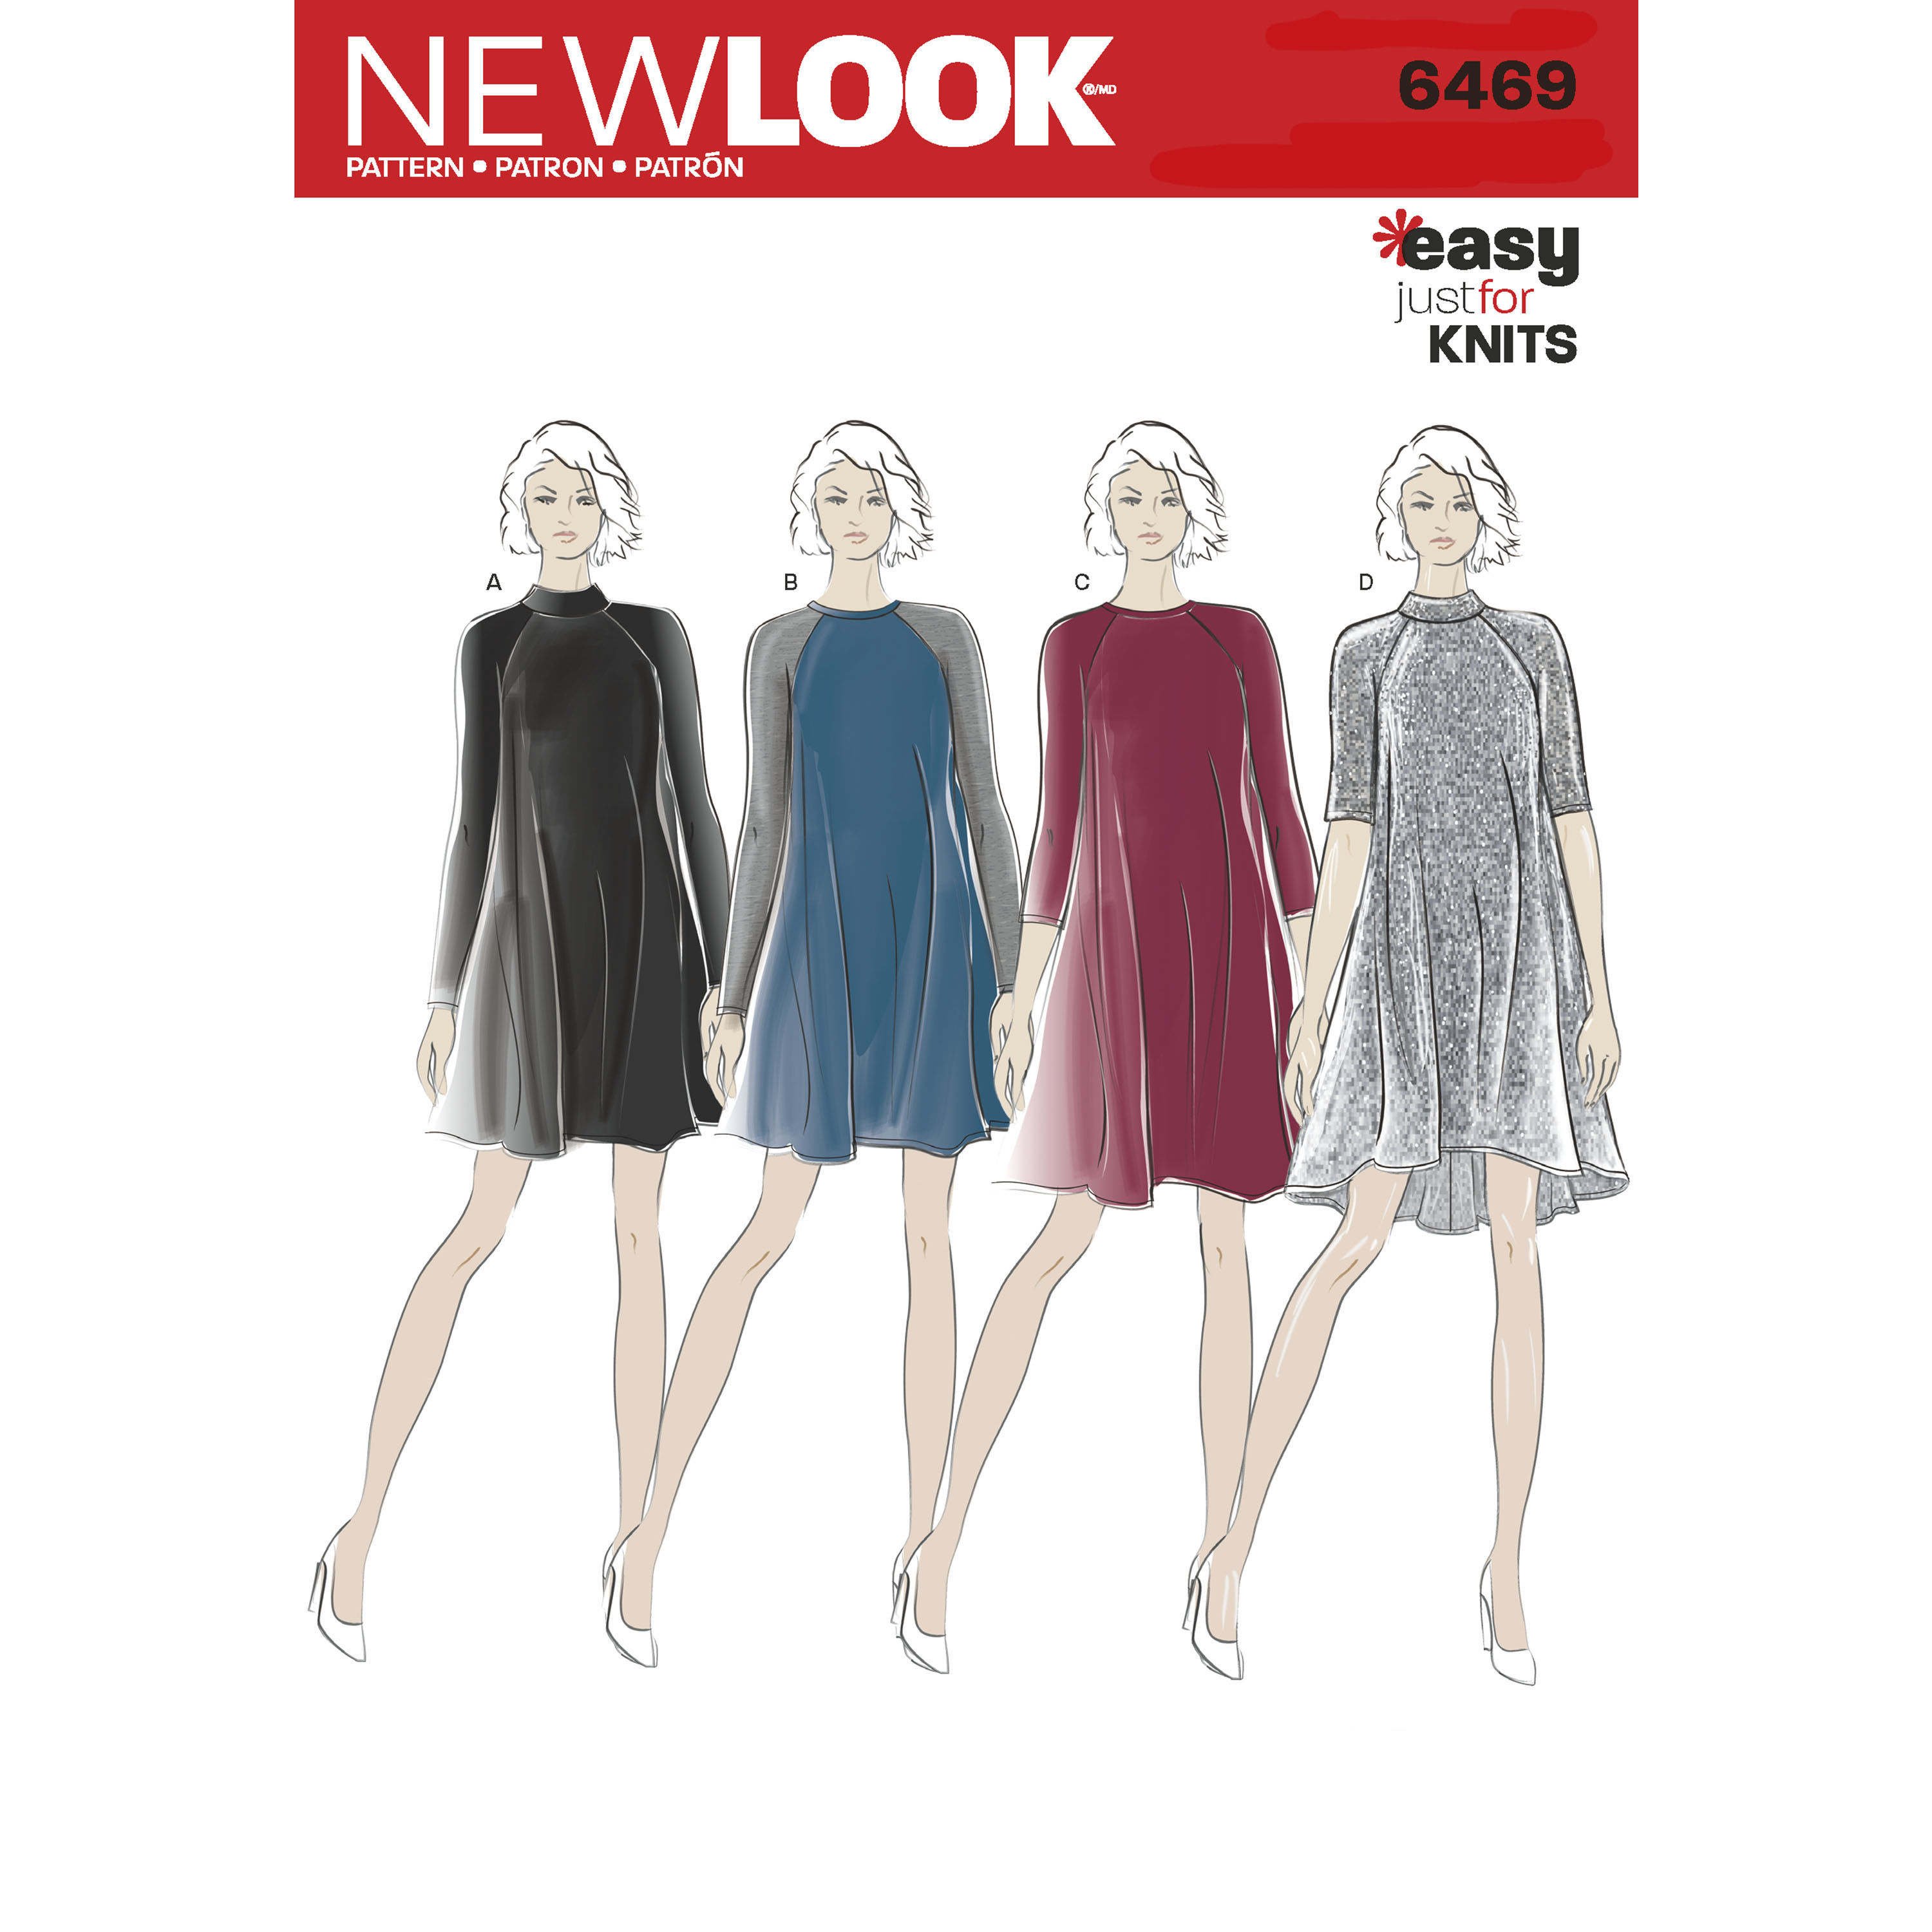 New Look Pattern 6469 Misses\' Easy Knit Dress with Length and Sleeve ...